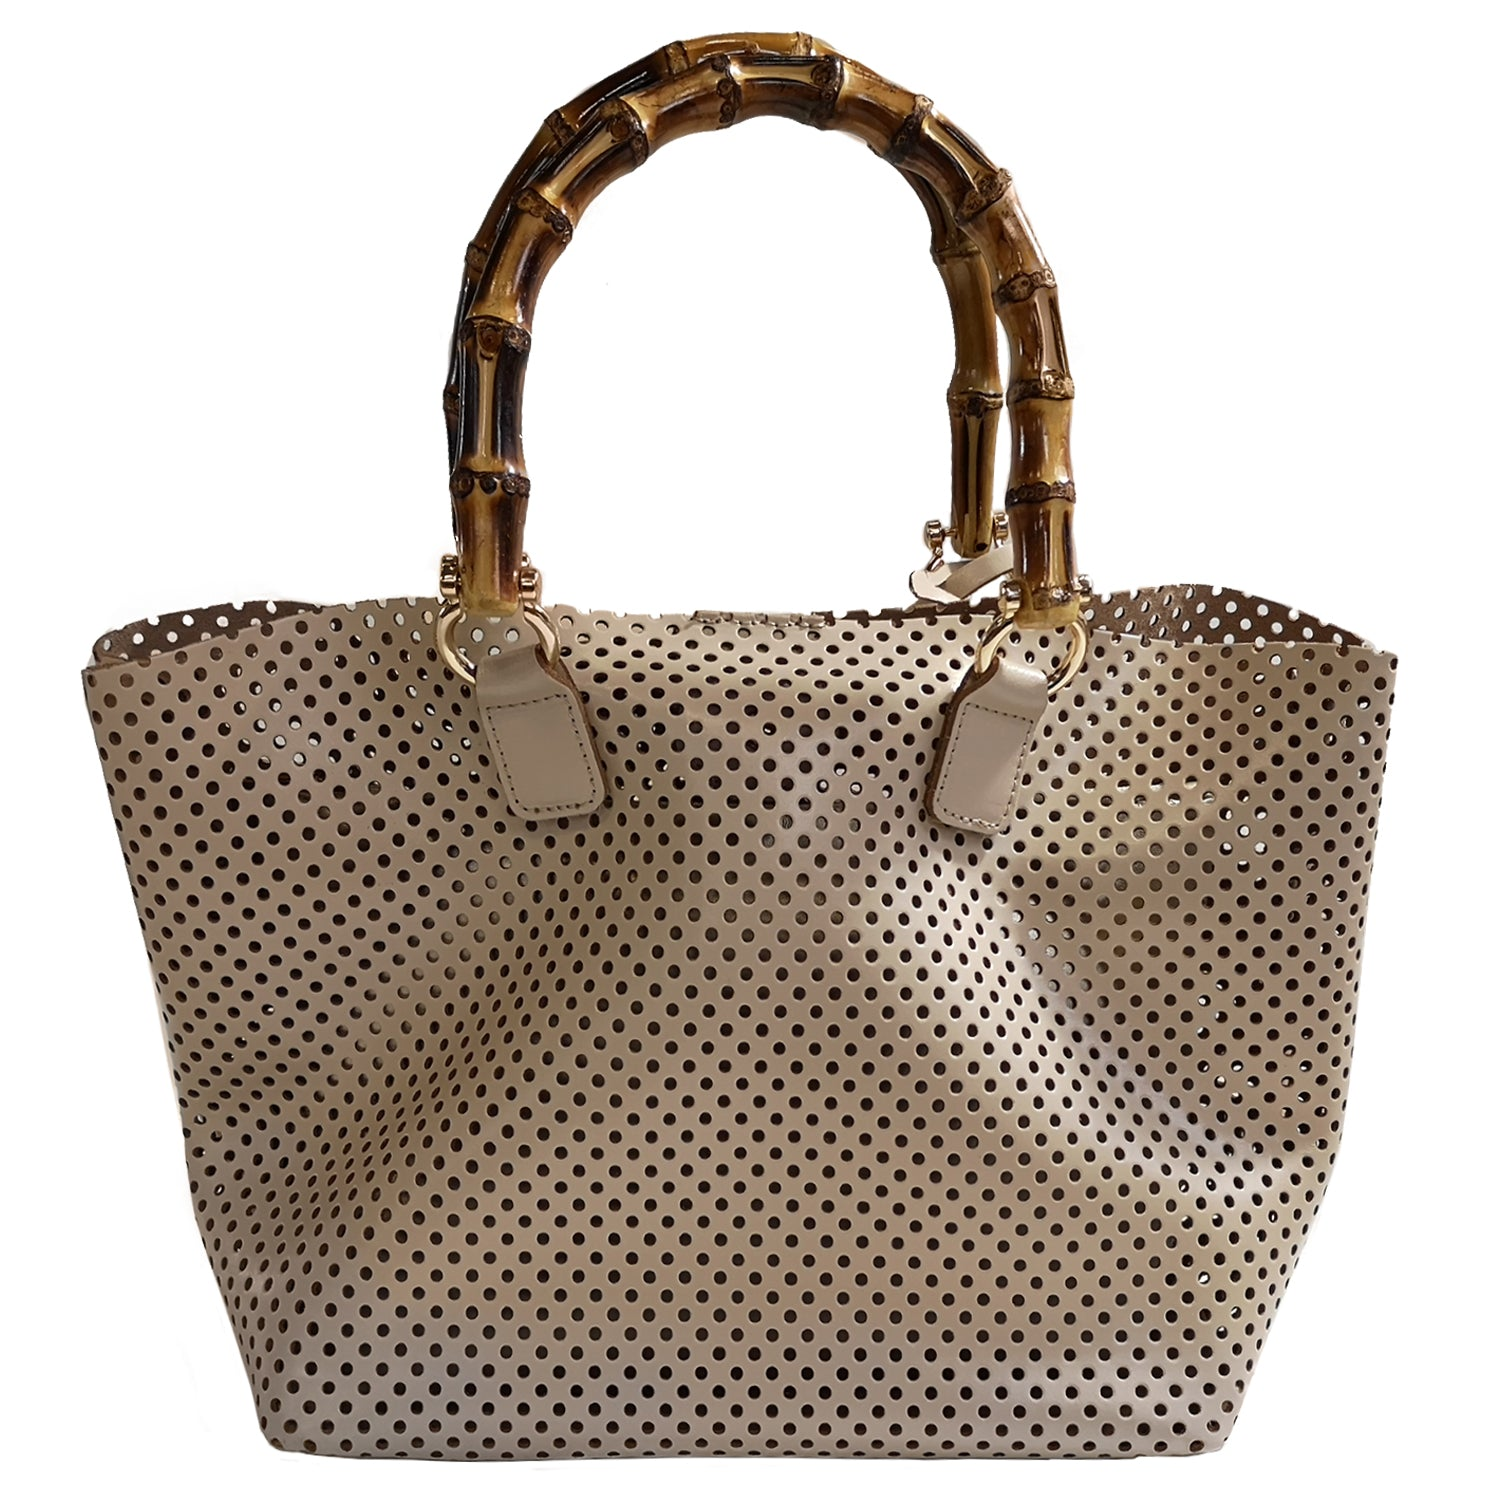 ONE & ONLY Soave Perforated Leather small Tote Bag w/ Bamboo handles (Q10B)